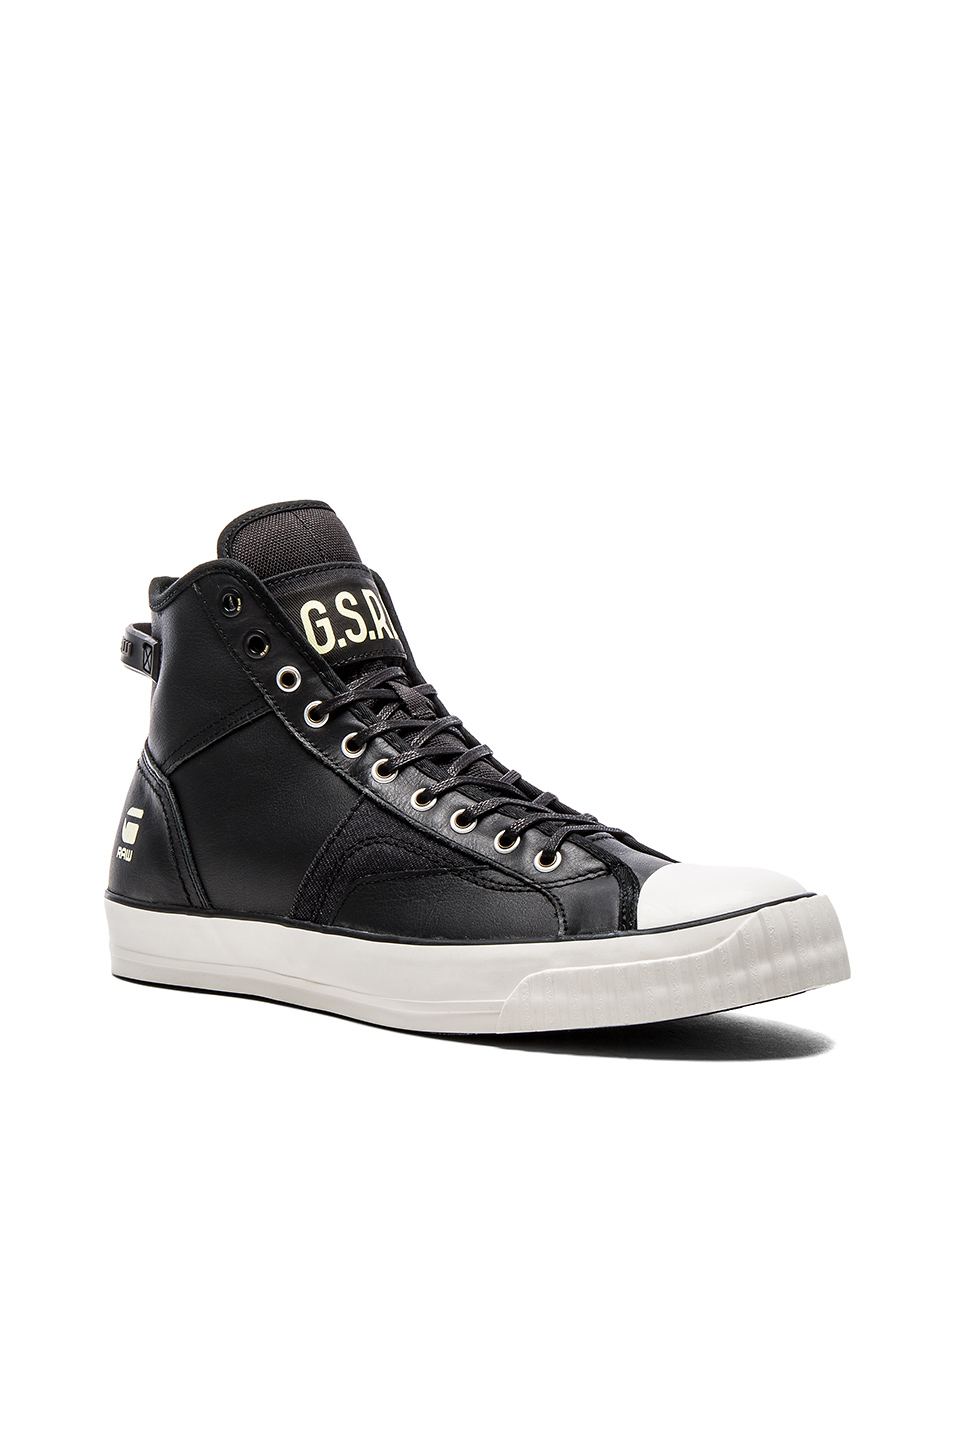 G Star Black Leather Shoes